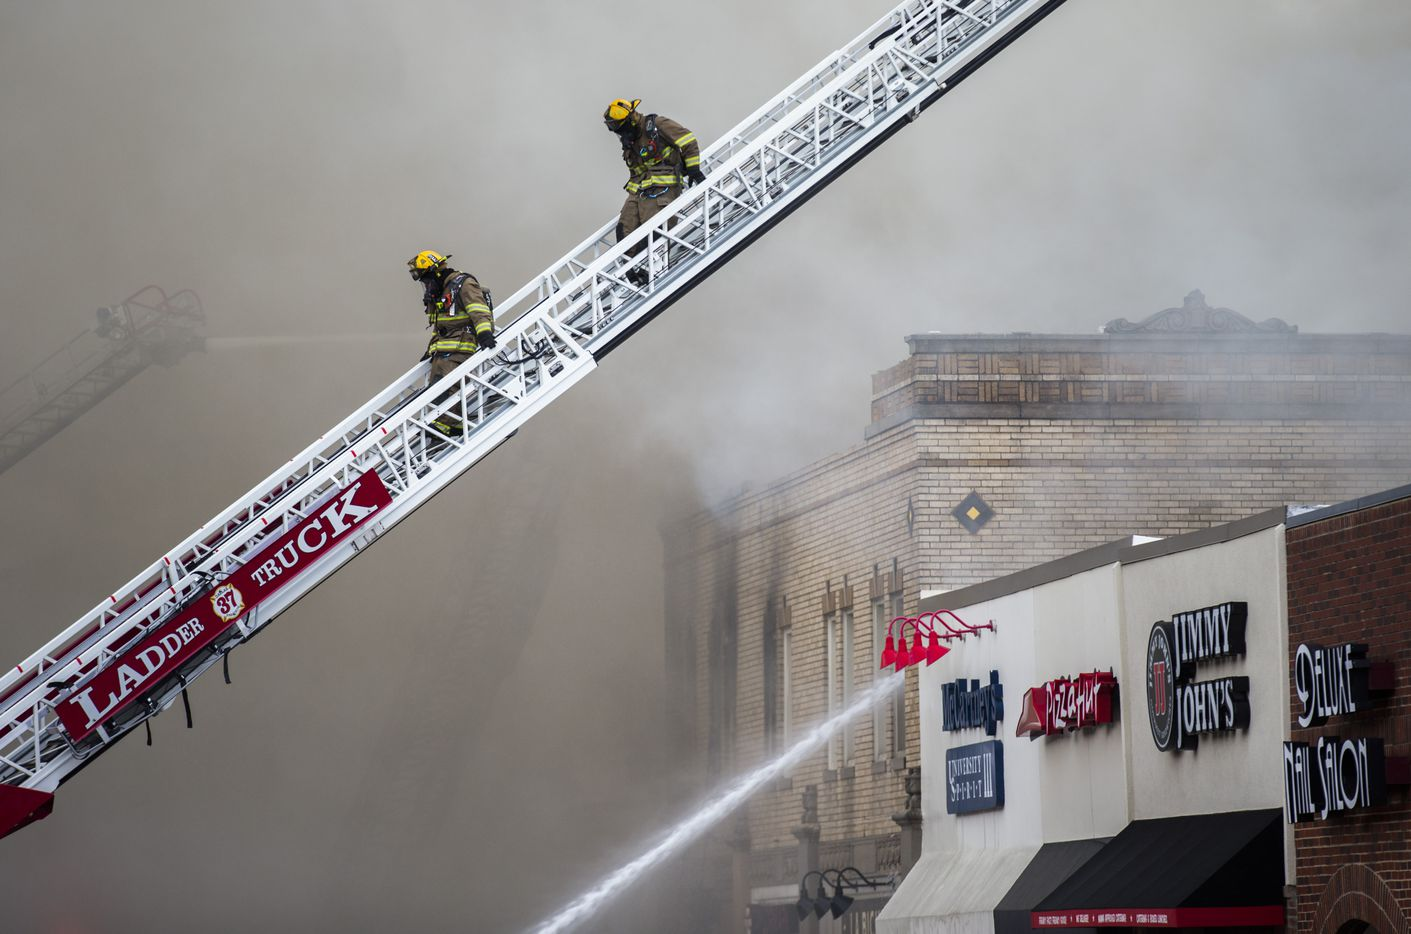 Firefighters battle flames at Goff's Hamburgers on Friday, August 12, 2016 on Hillcrest Avenue near the SMU campus in University Park. (Ashley Landis/The Dallas Morning News)